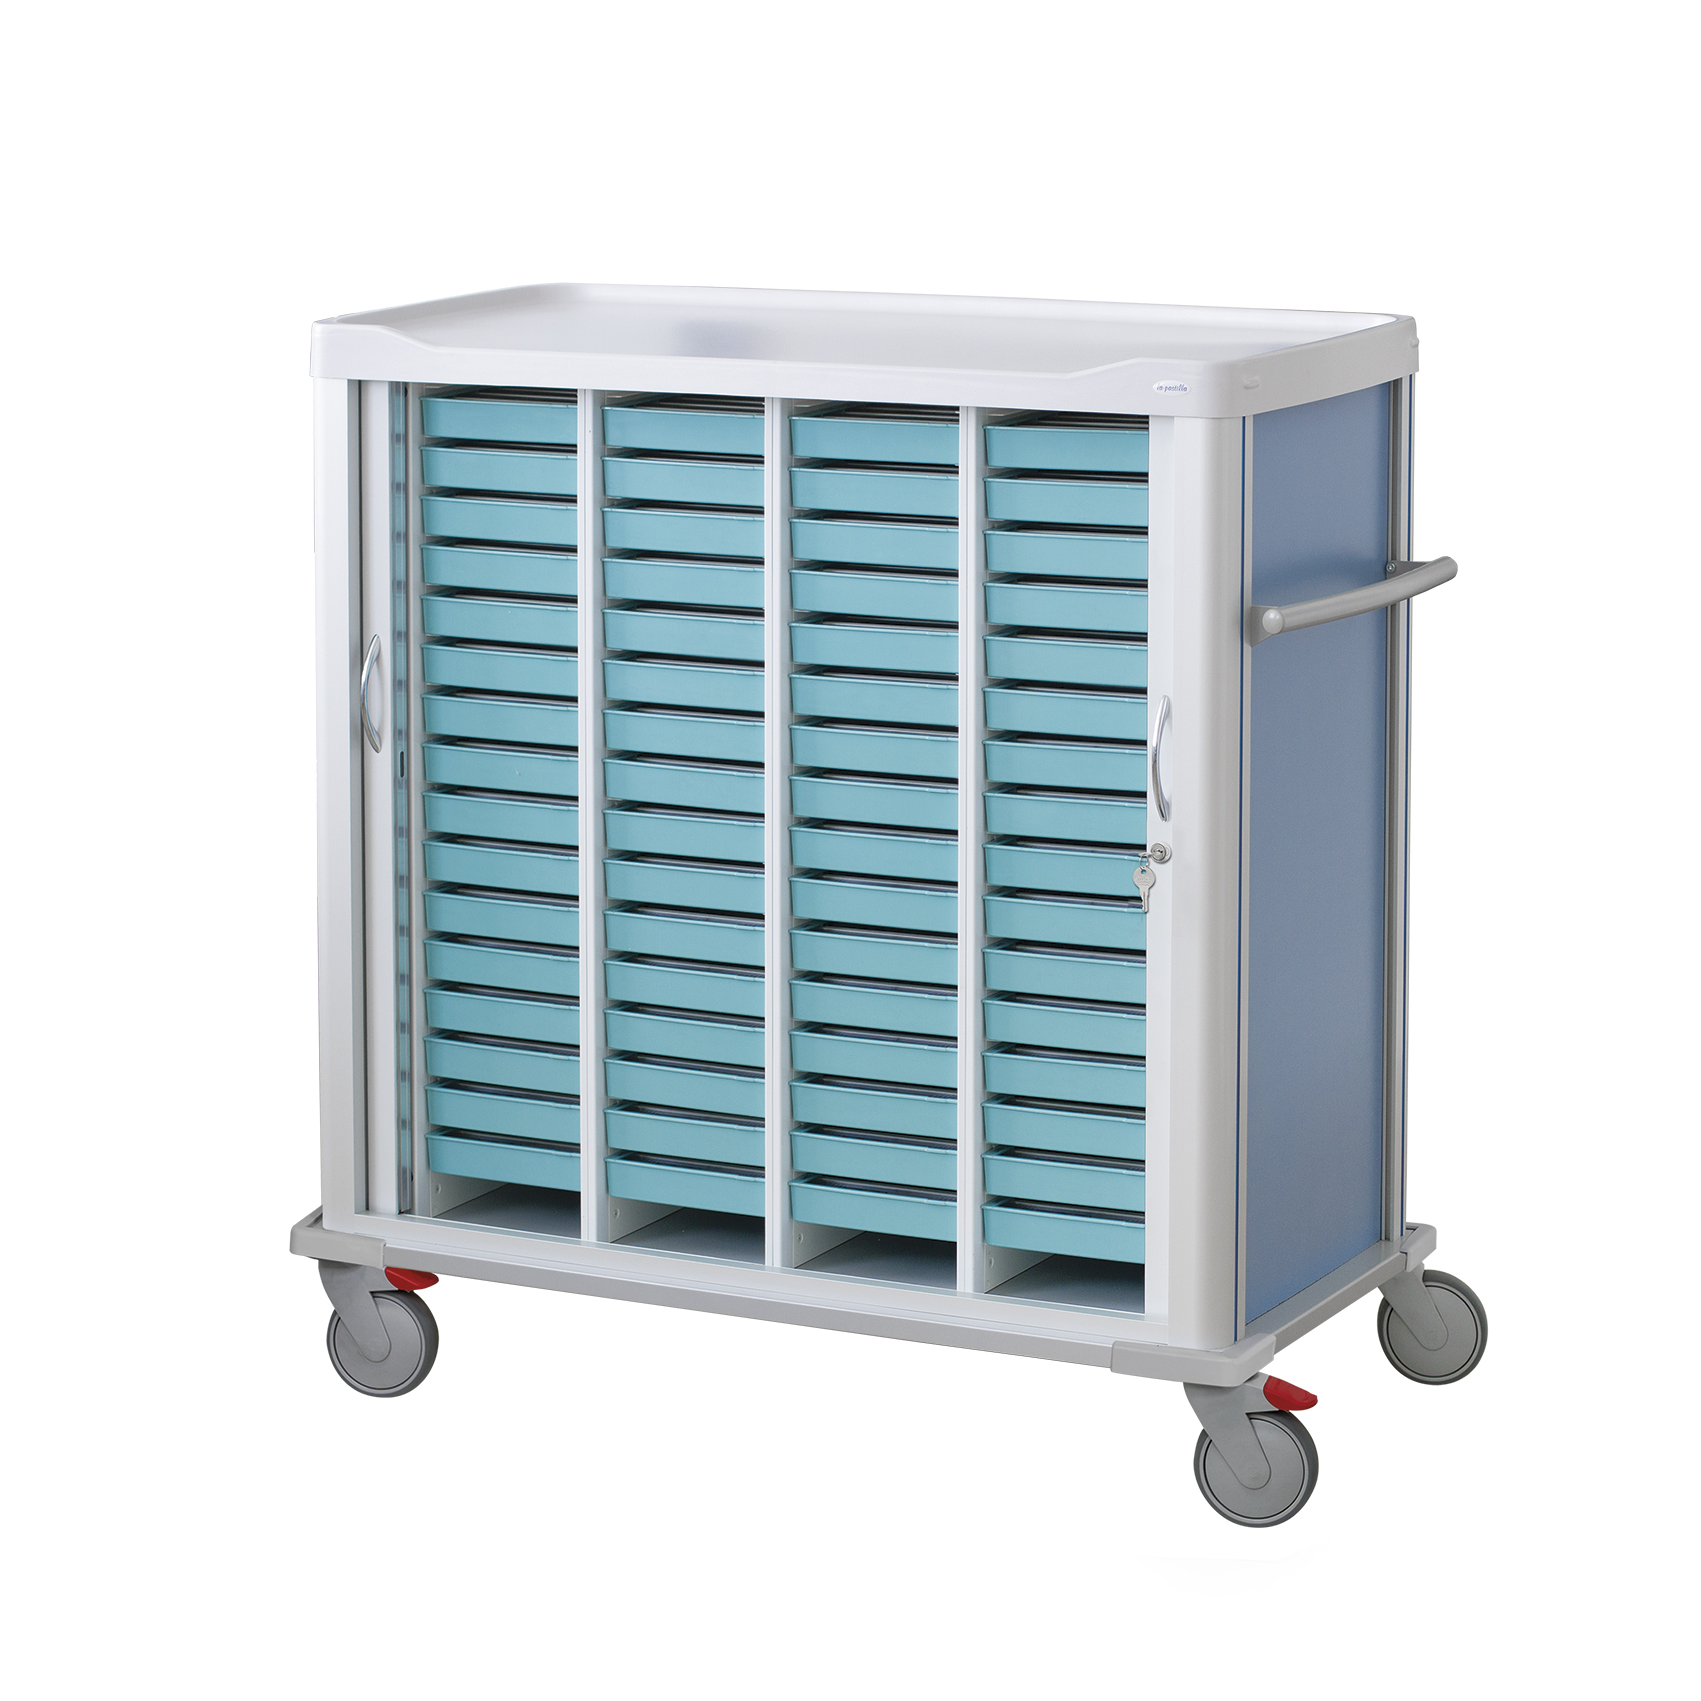 Medication cart with shutter door with lock and pusher on the side with 64 weekly trays inside